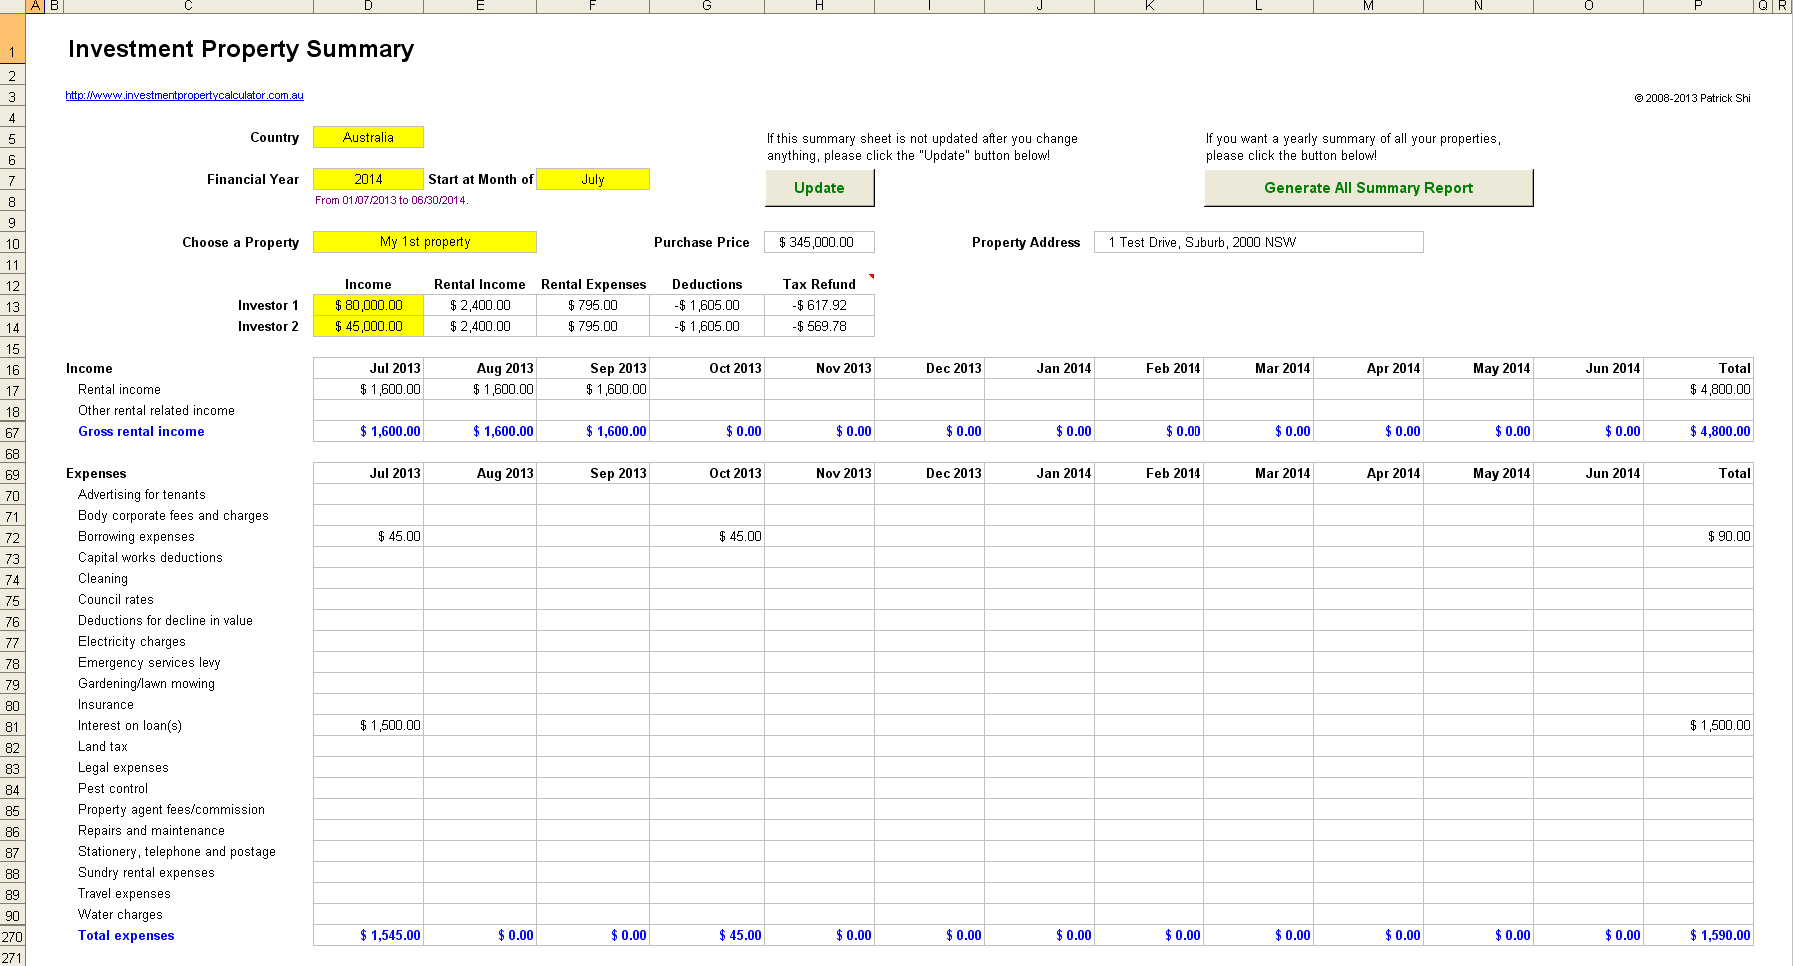 Share Trading Record Keeping Excel Shares Record Keeping Spreadsheet Google Spreadshee Shares